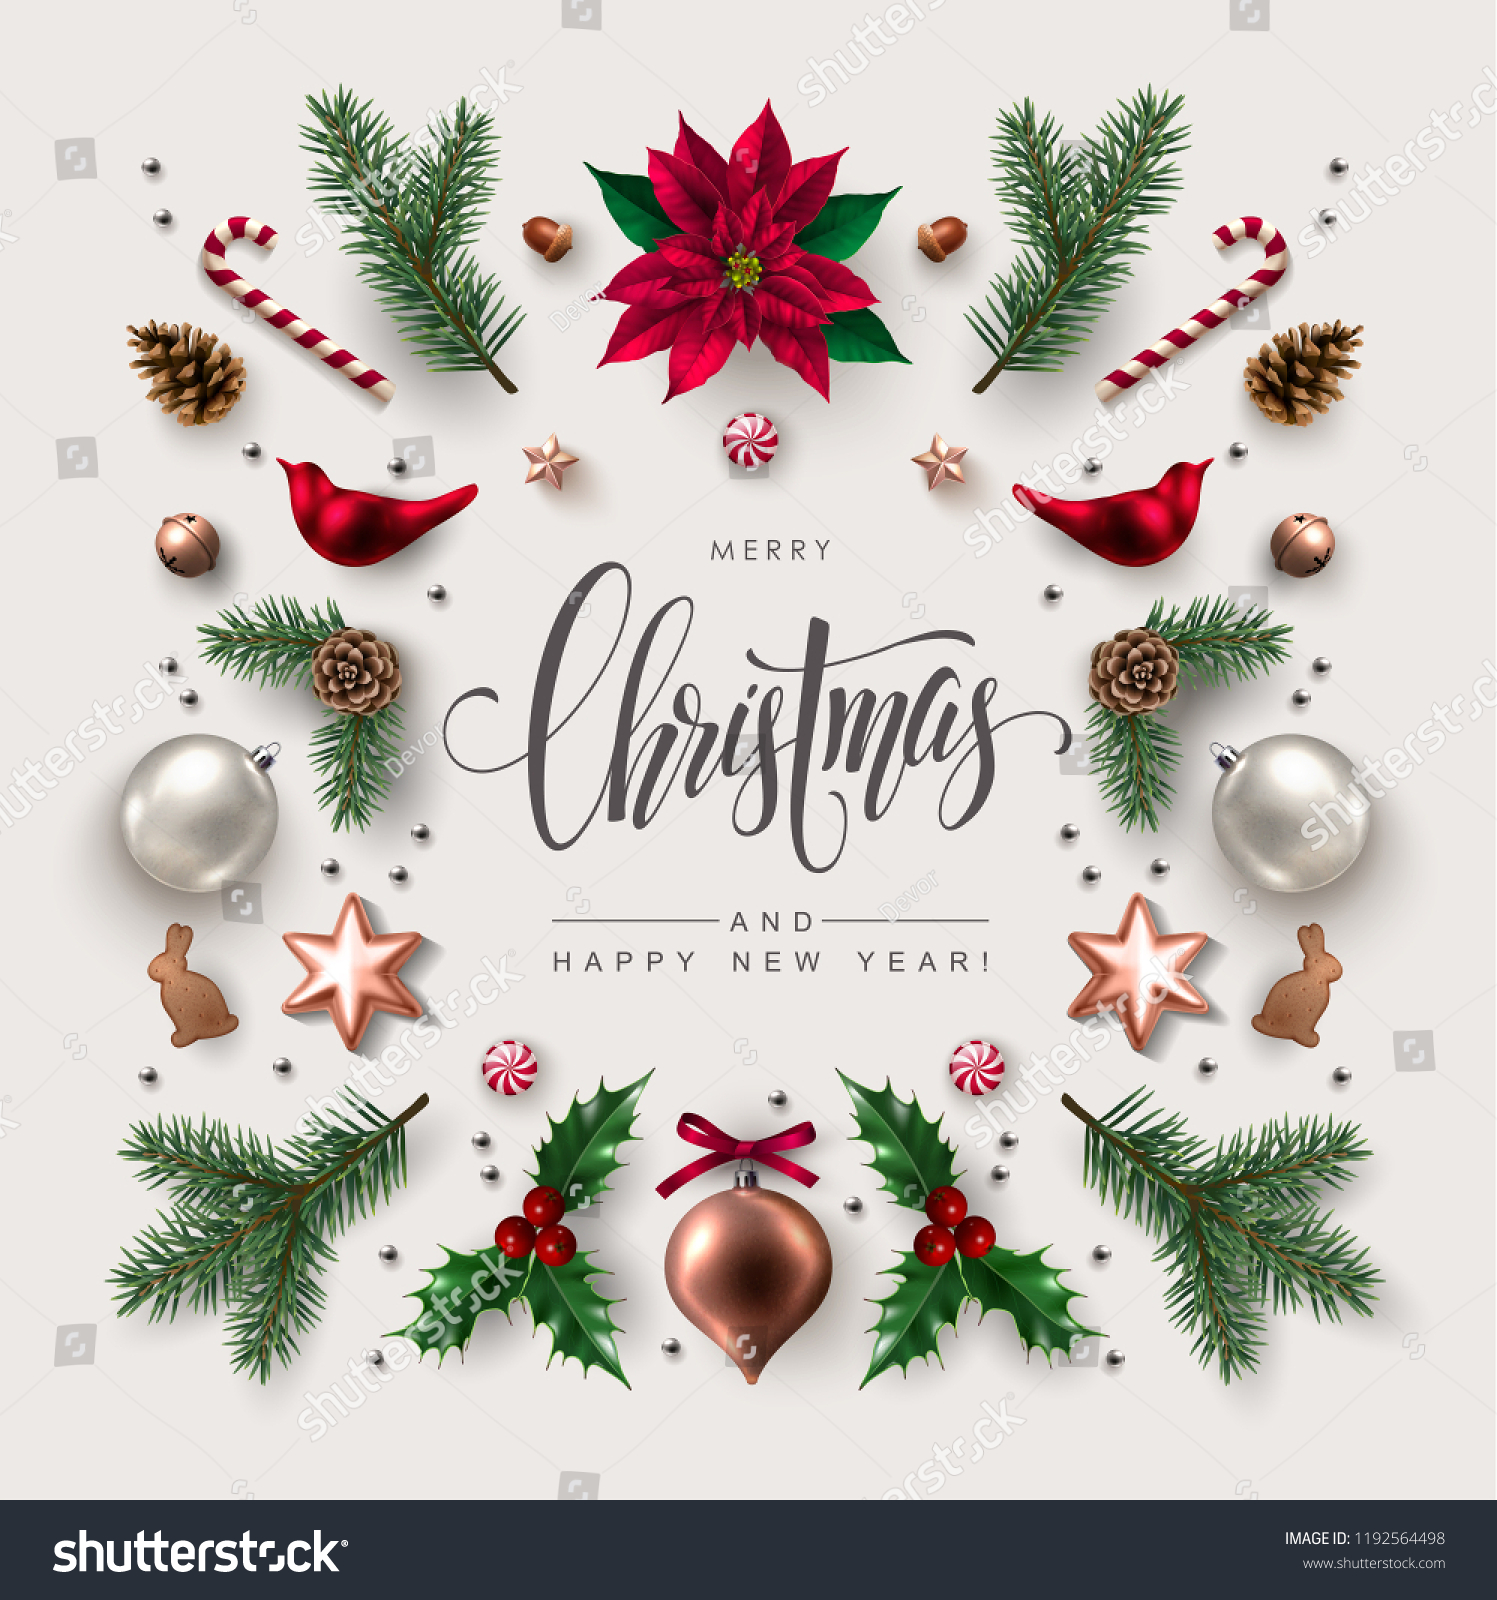 Christmas greeting card with Calligraphic Season Wishes and Composition of Festive Elements such as Cookies, Candies, Berries, Christmas Tree Decorations, Pine Branches. #1192564498